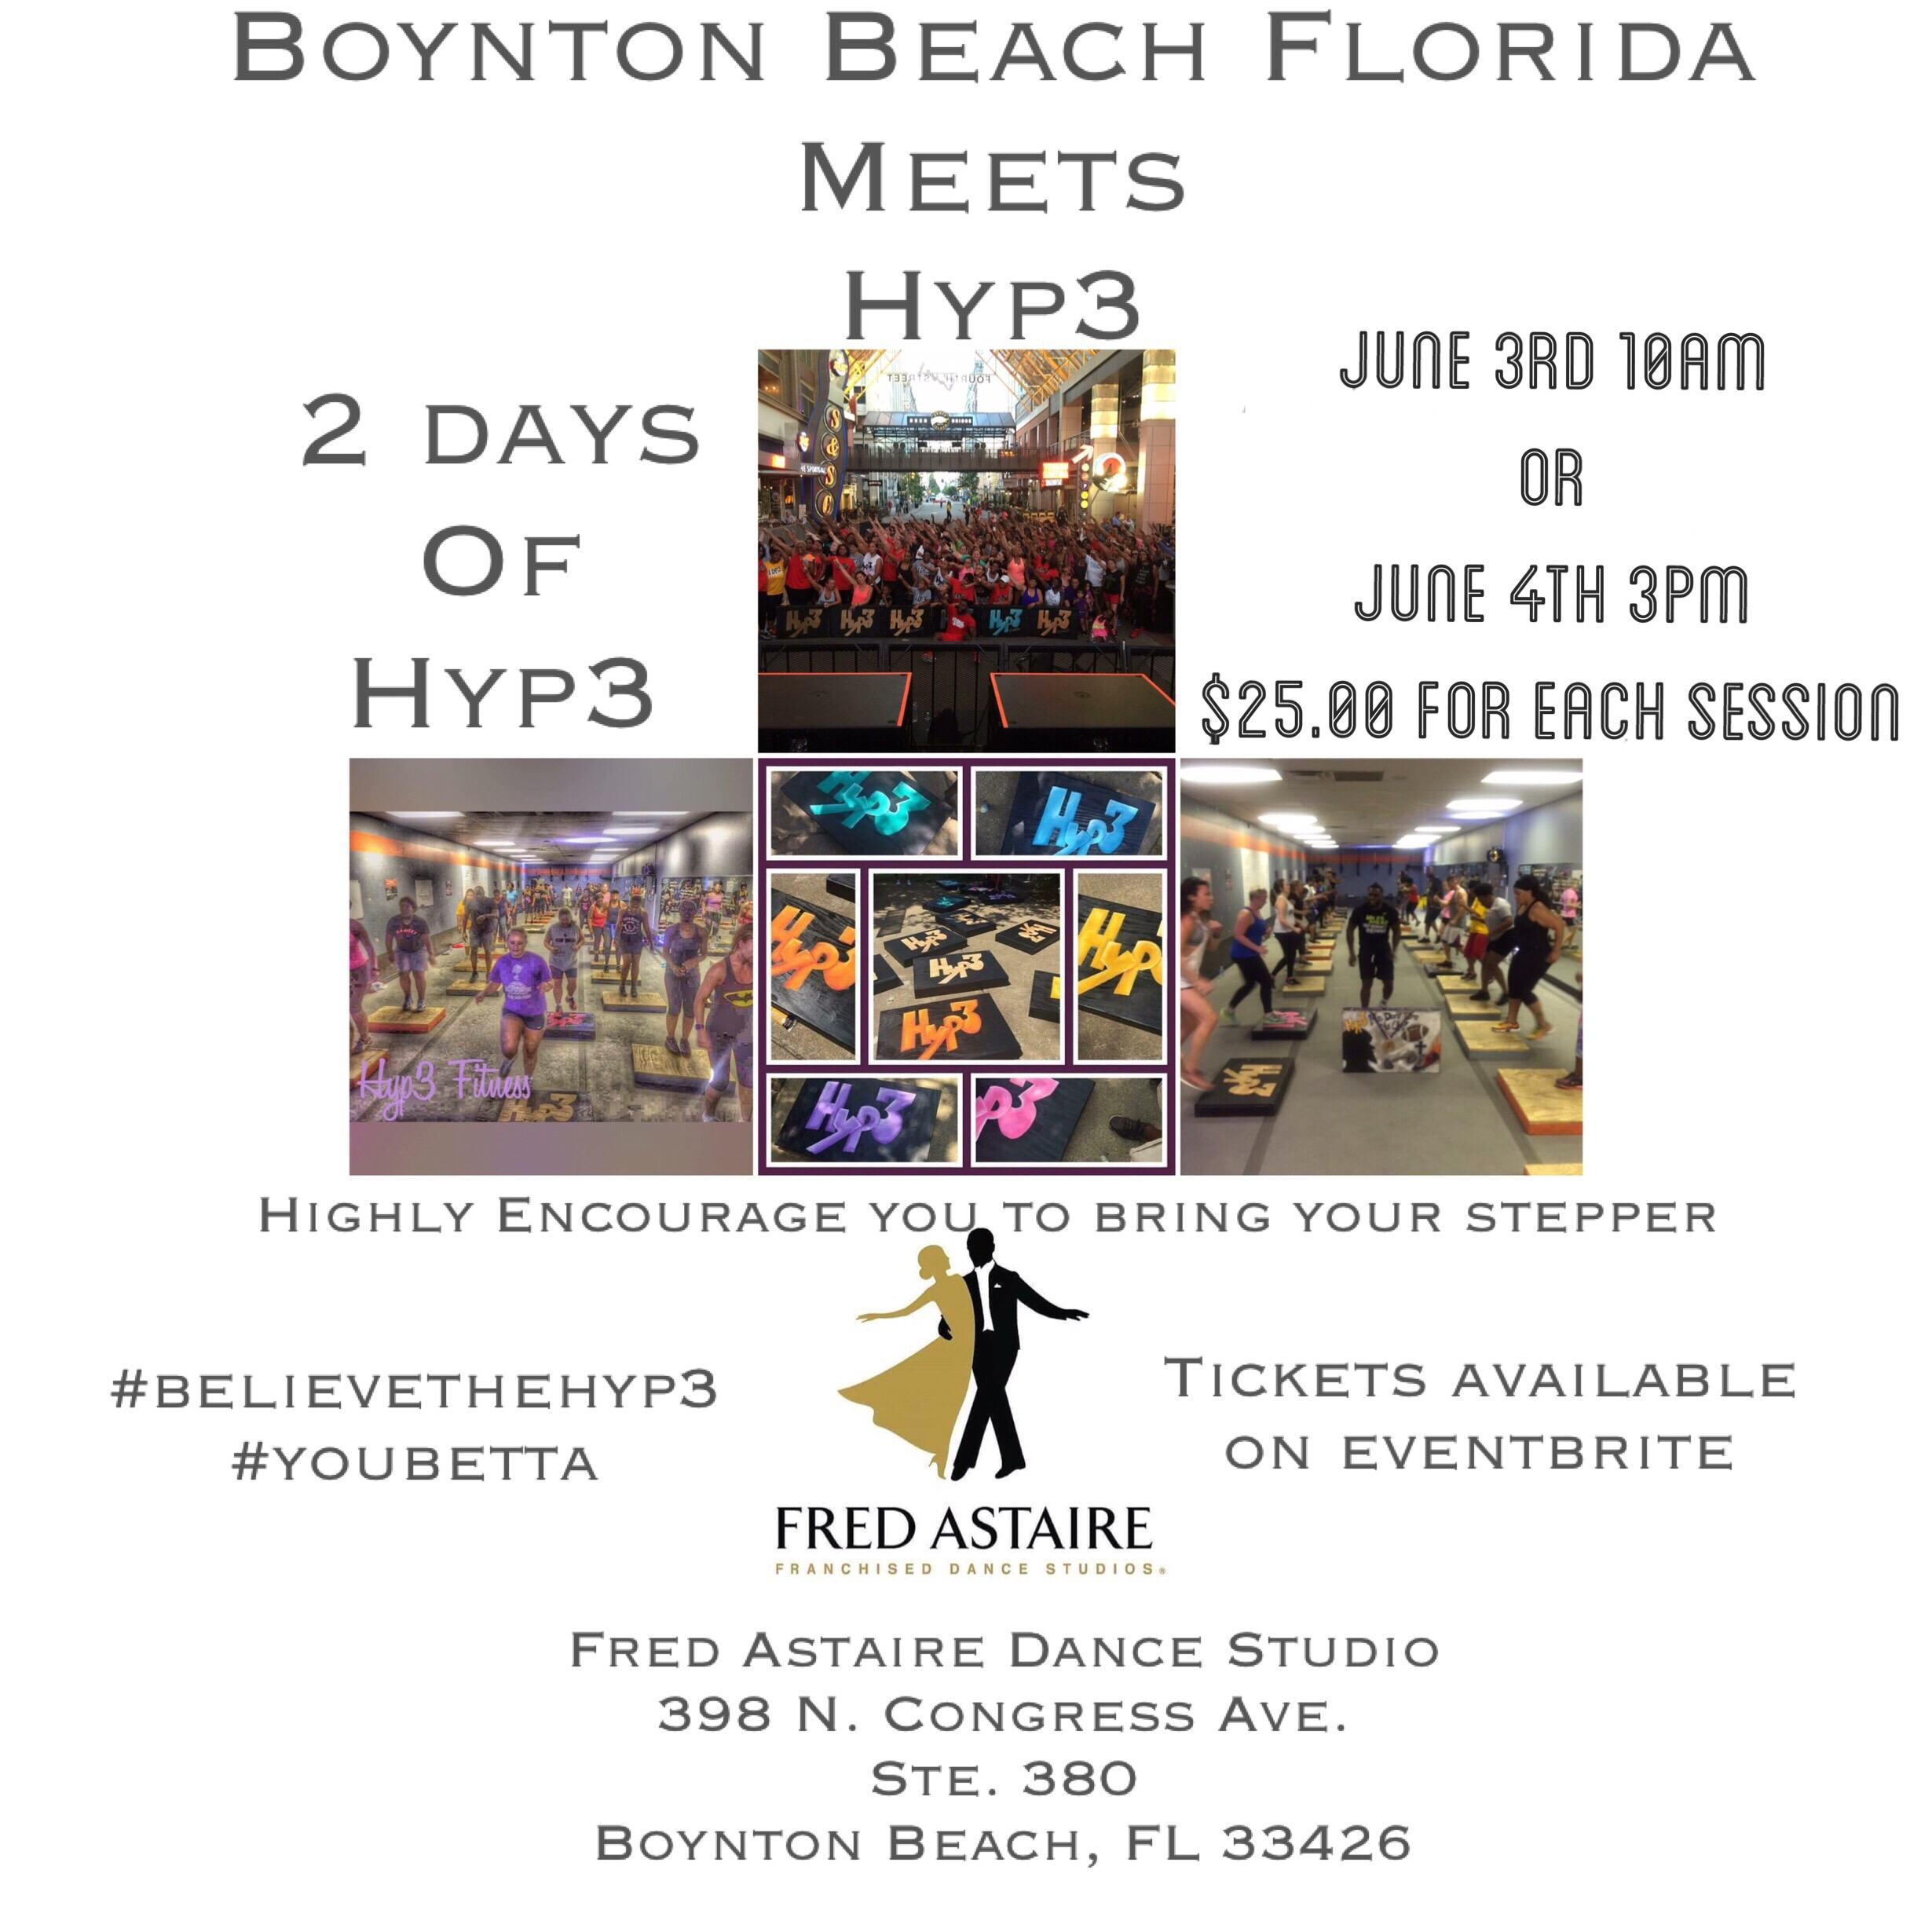 Hyp3 Meets Boynton Beach